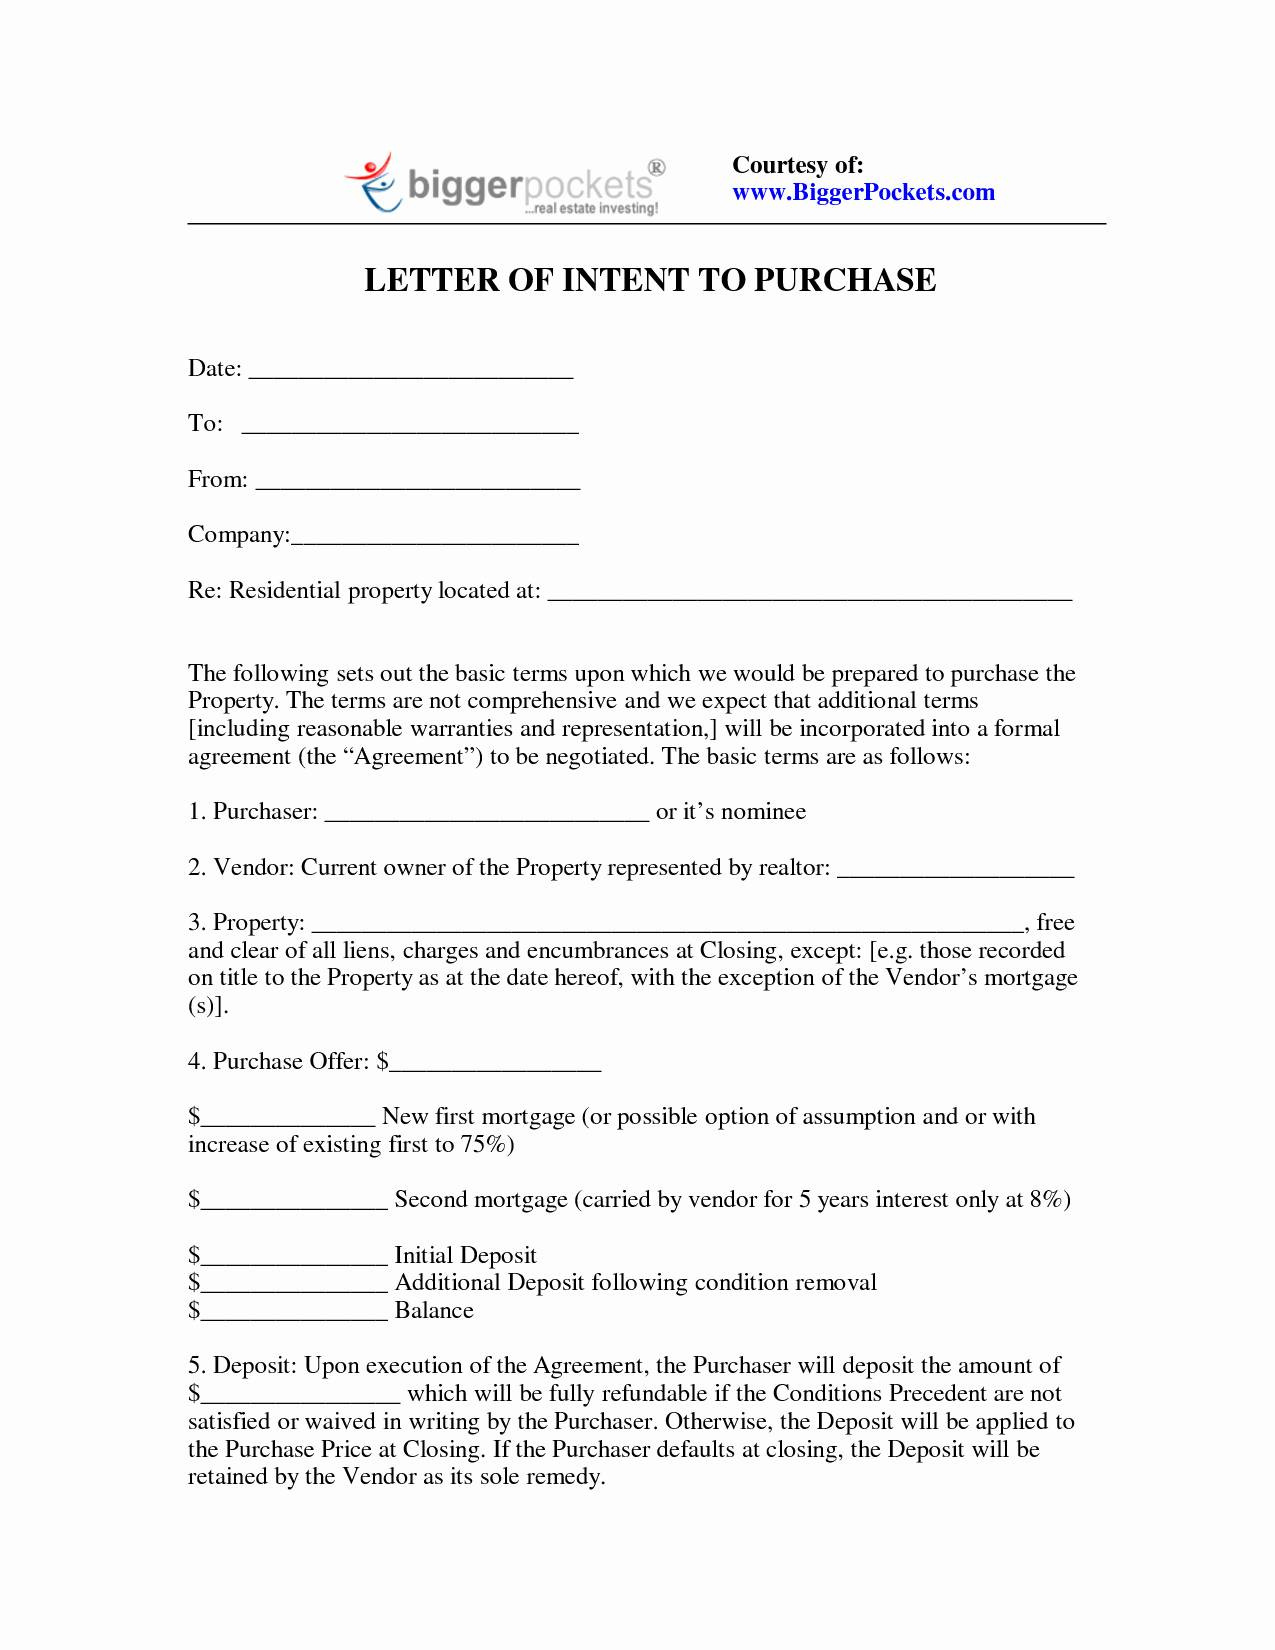 Letter of intent to purchase real estate template examples for Letter of intent for real estate purchase template